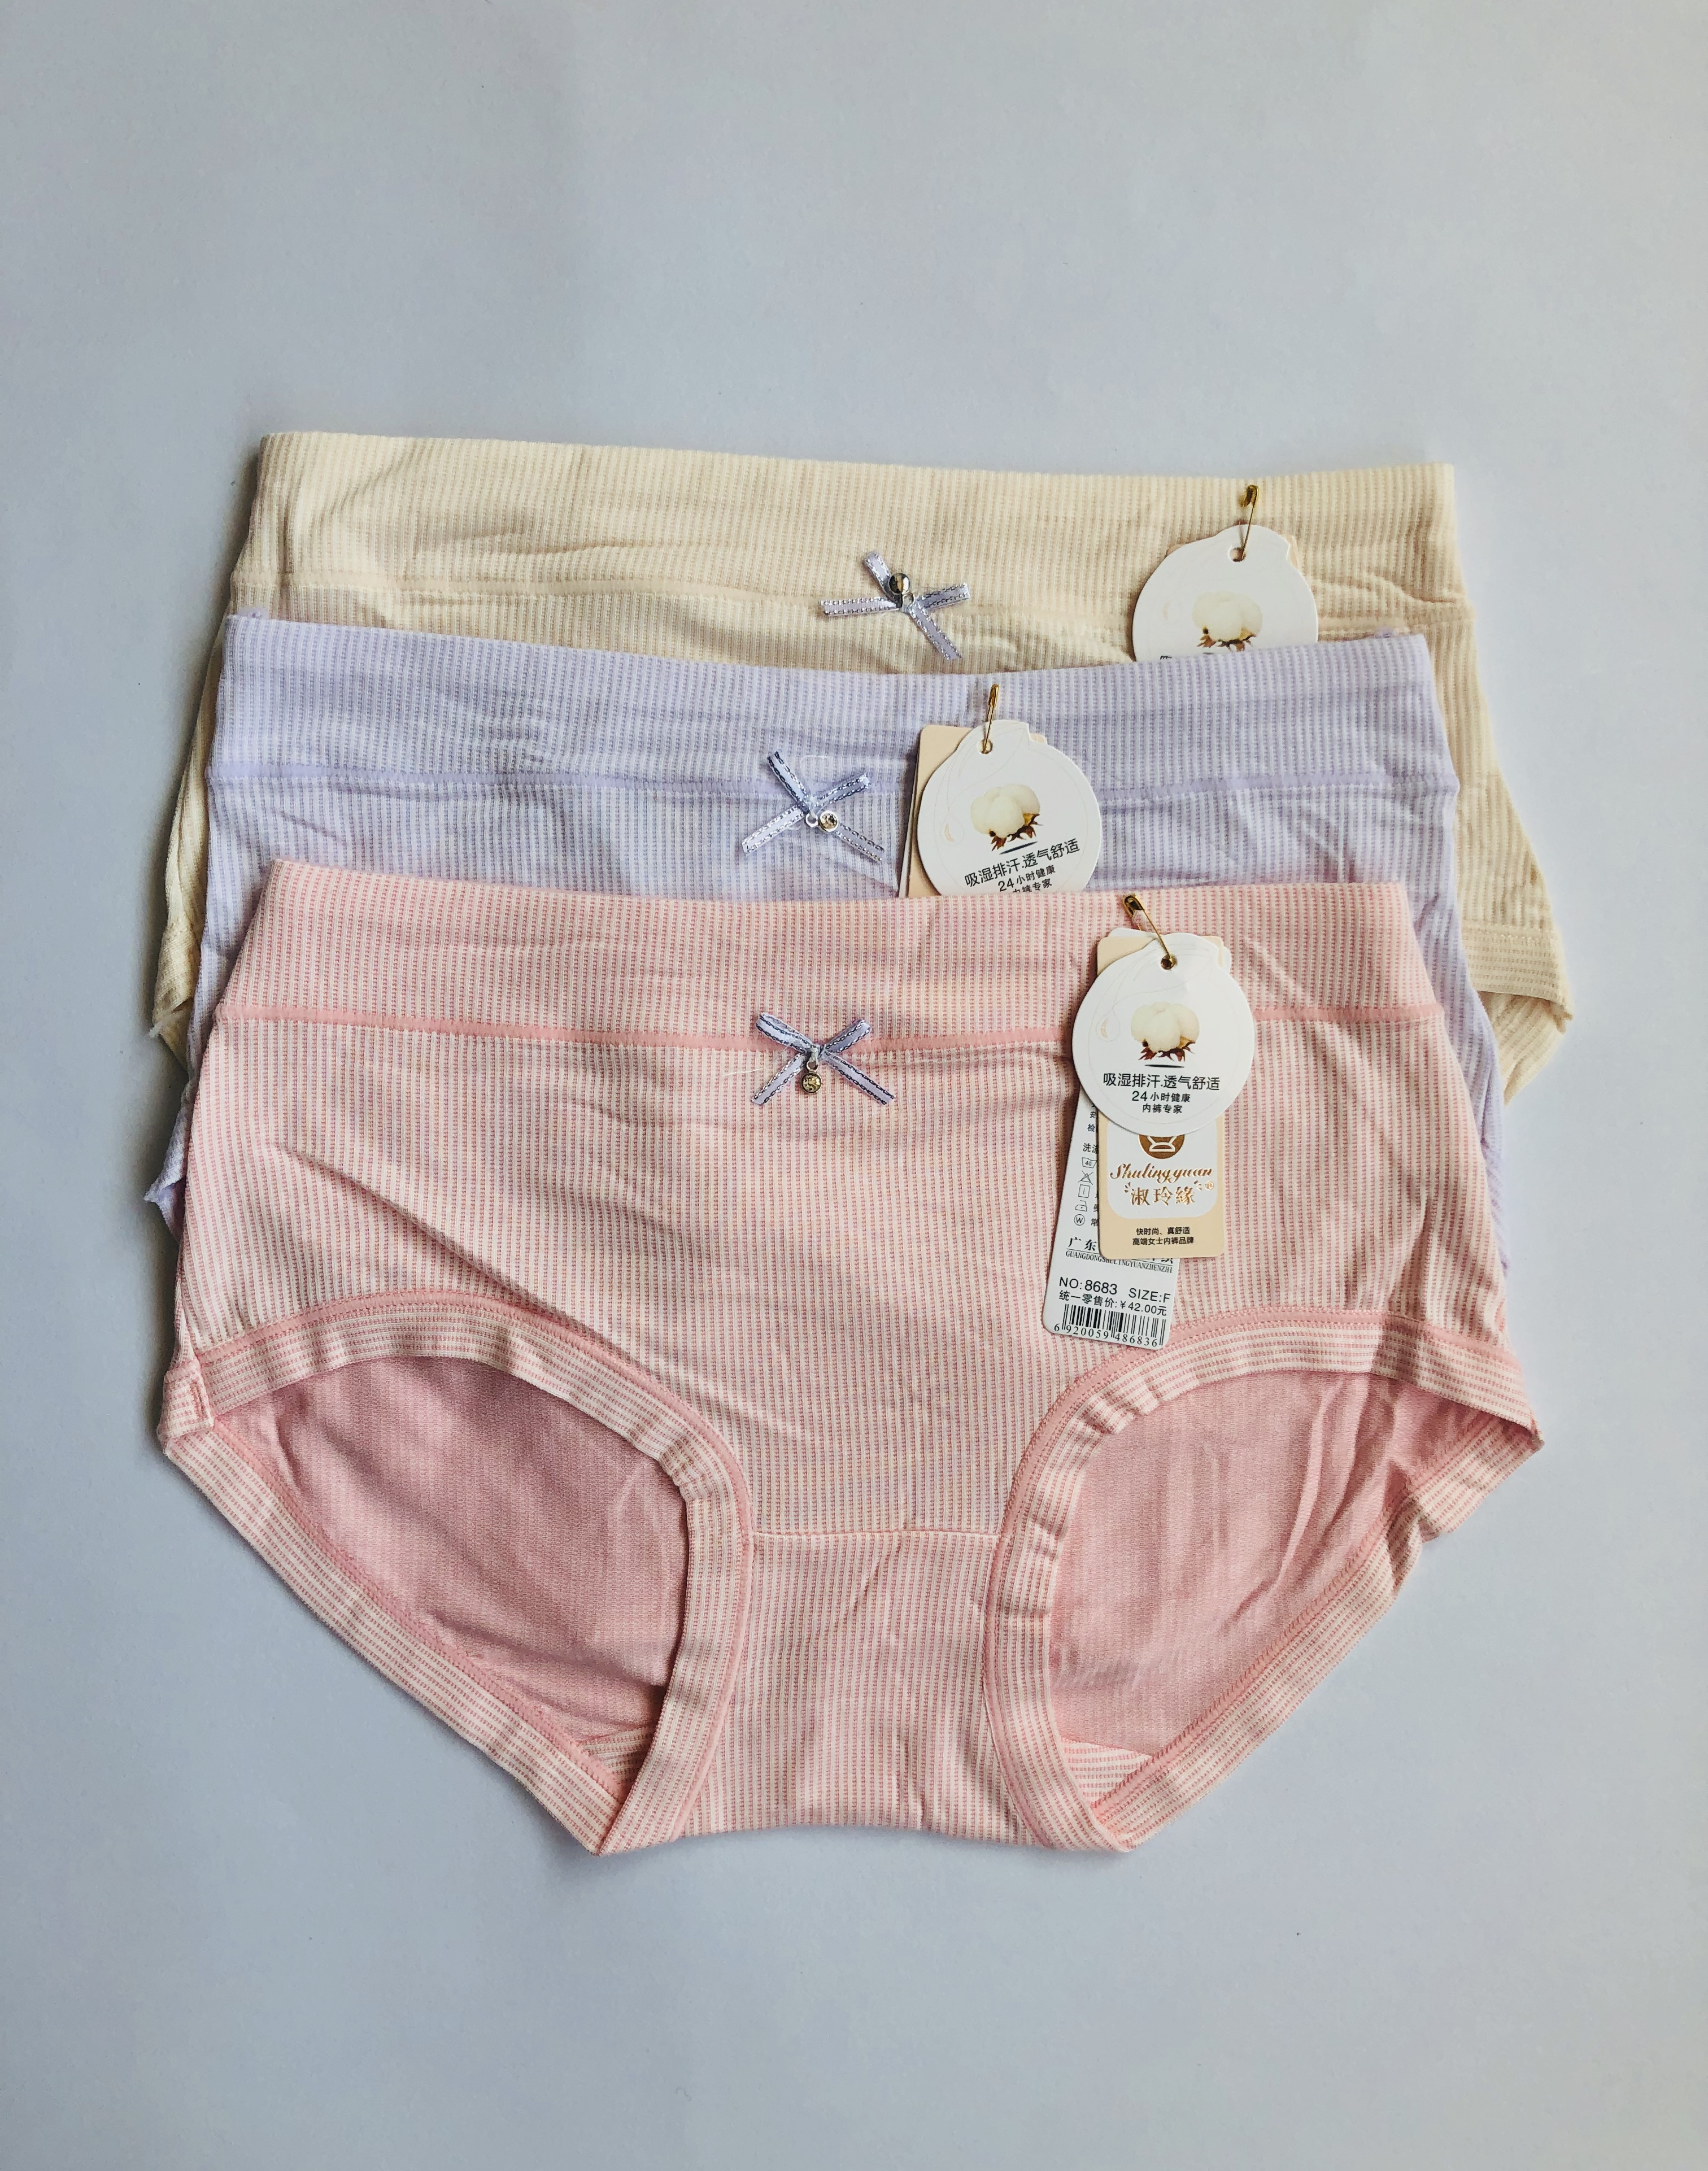 Pack Of 3 Lining Cotton Panties with Bowknot Combo 2